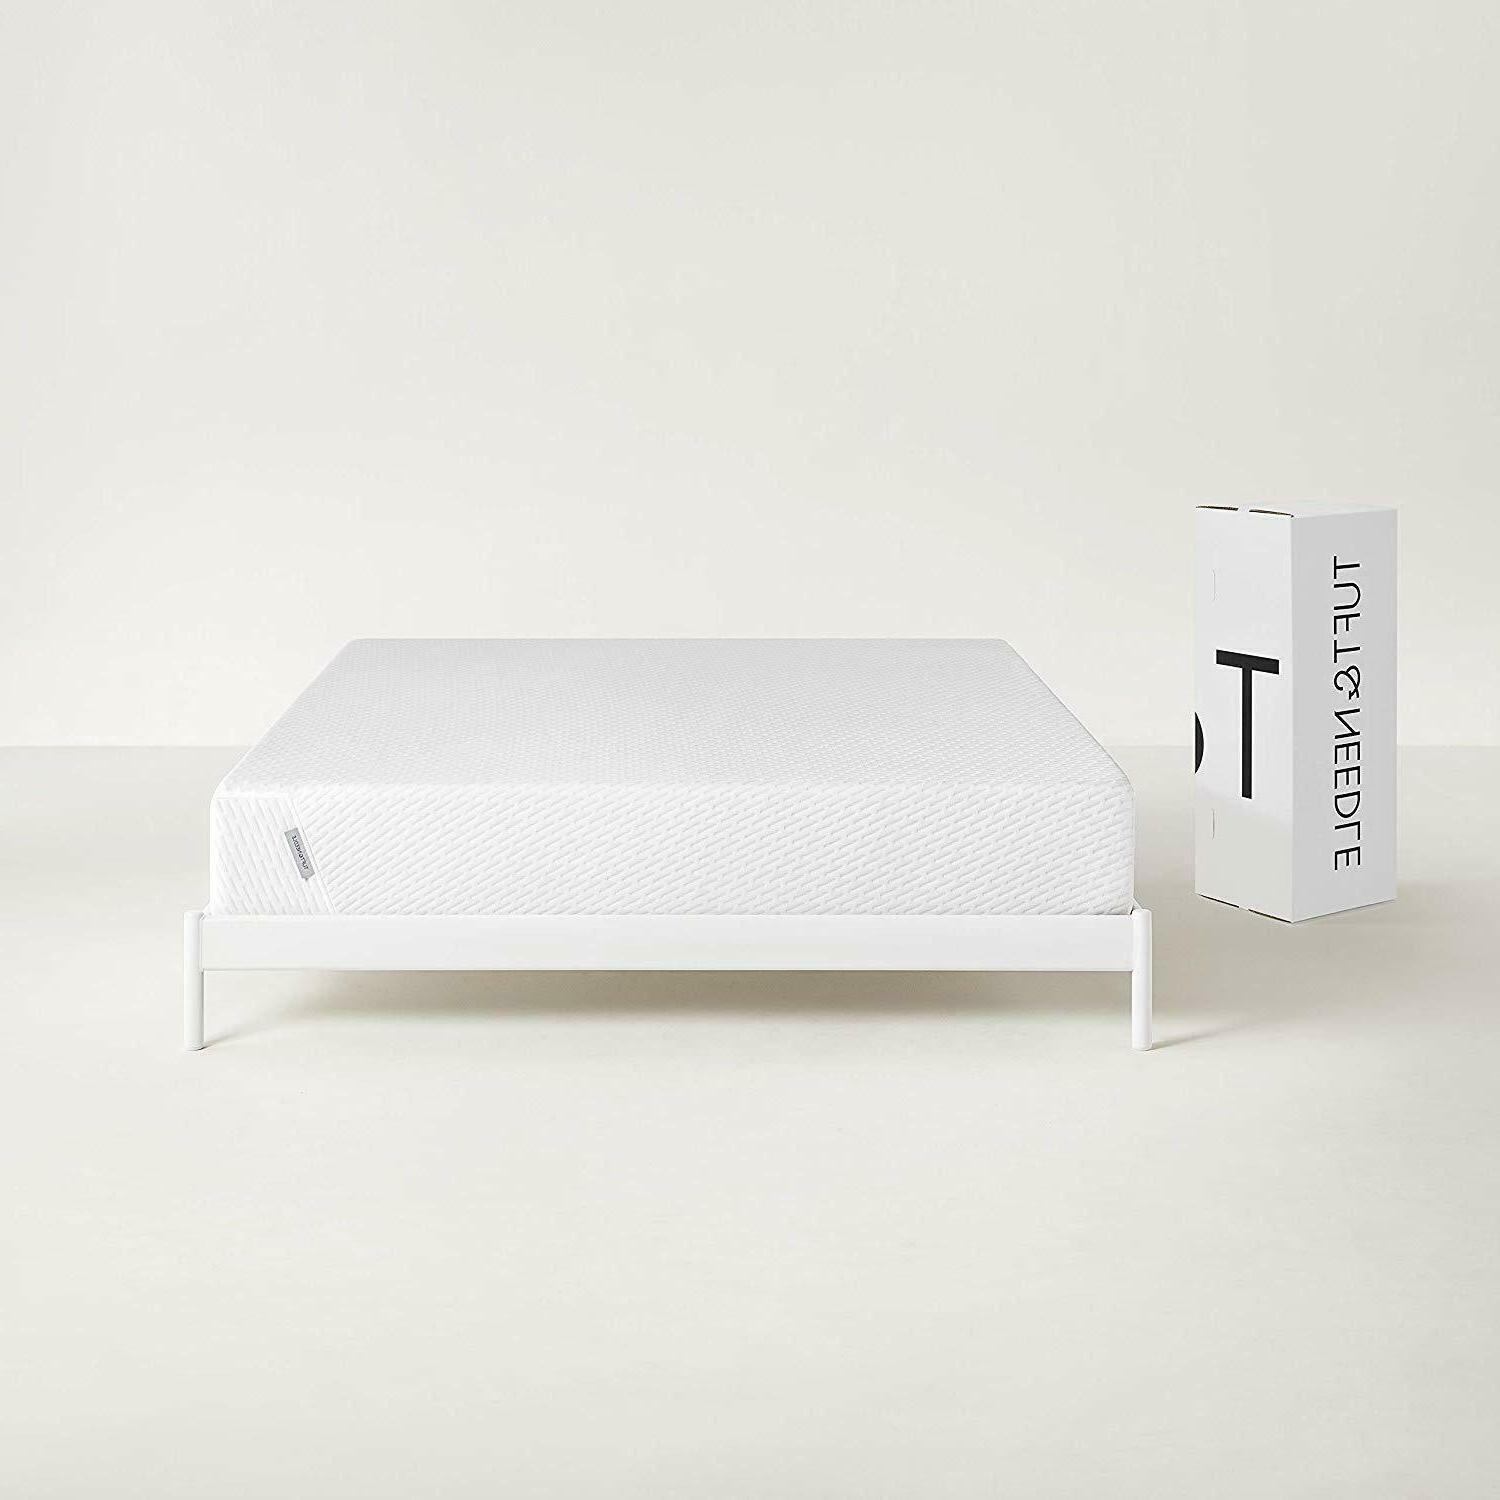 Tuft & Needle Queen Mattress, Bed in a Box, T&N Adaptive Foa